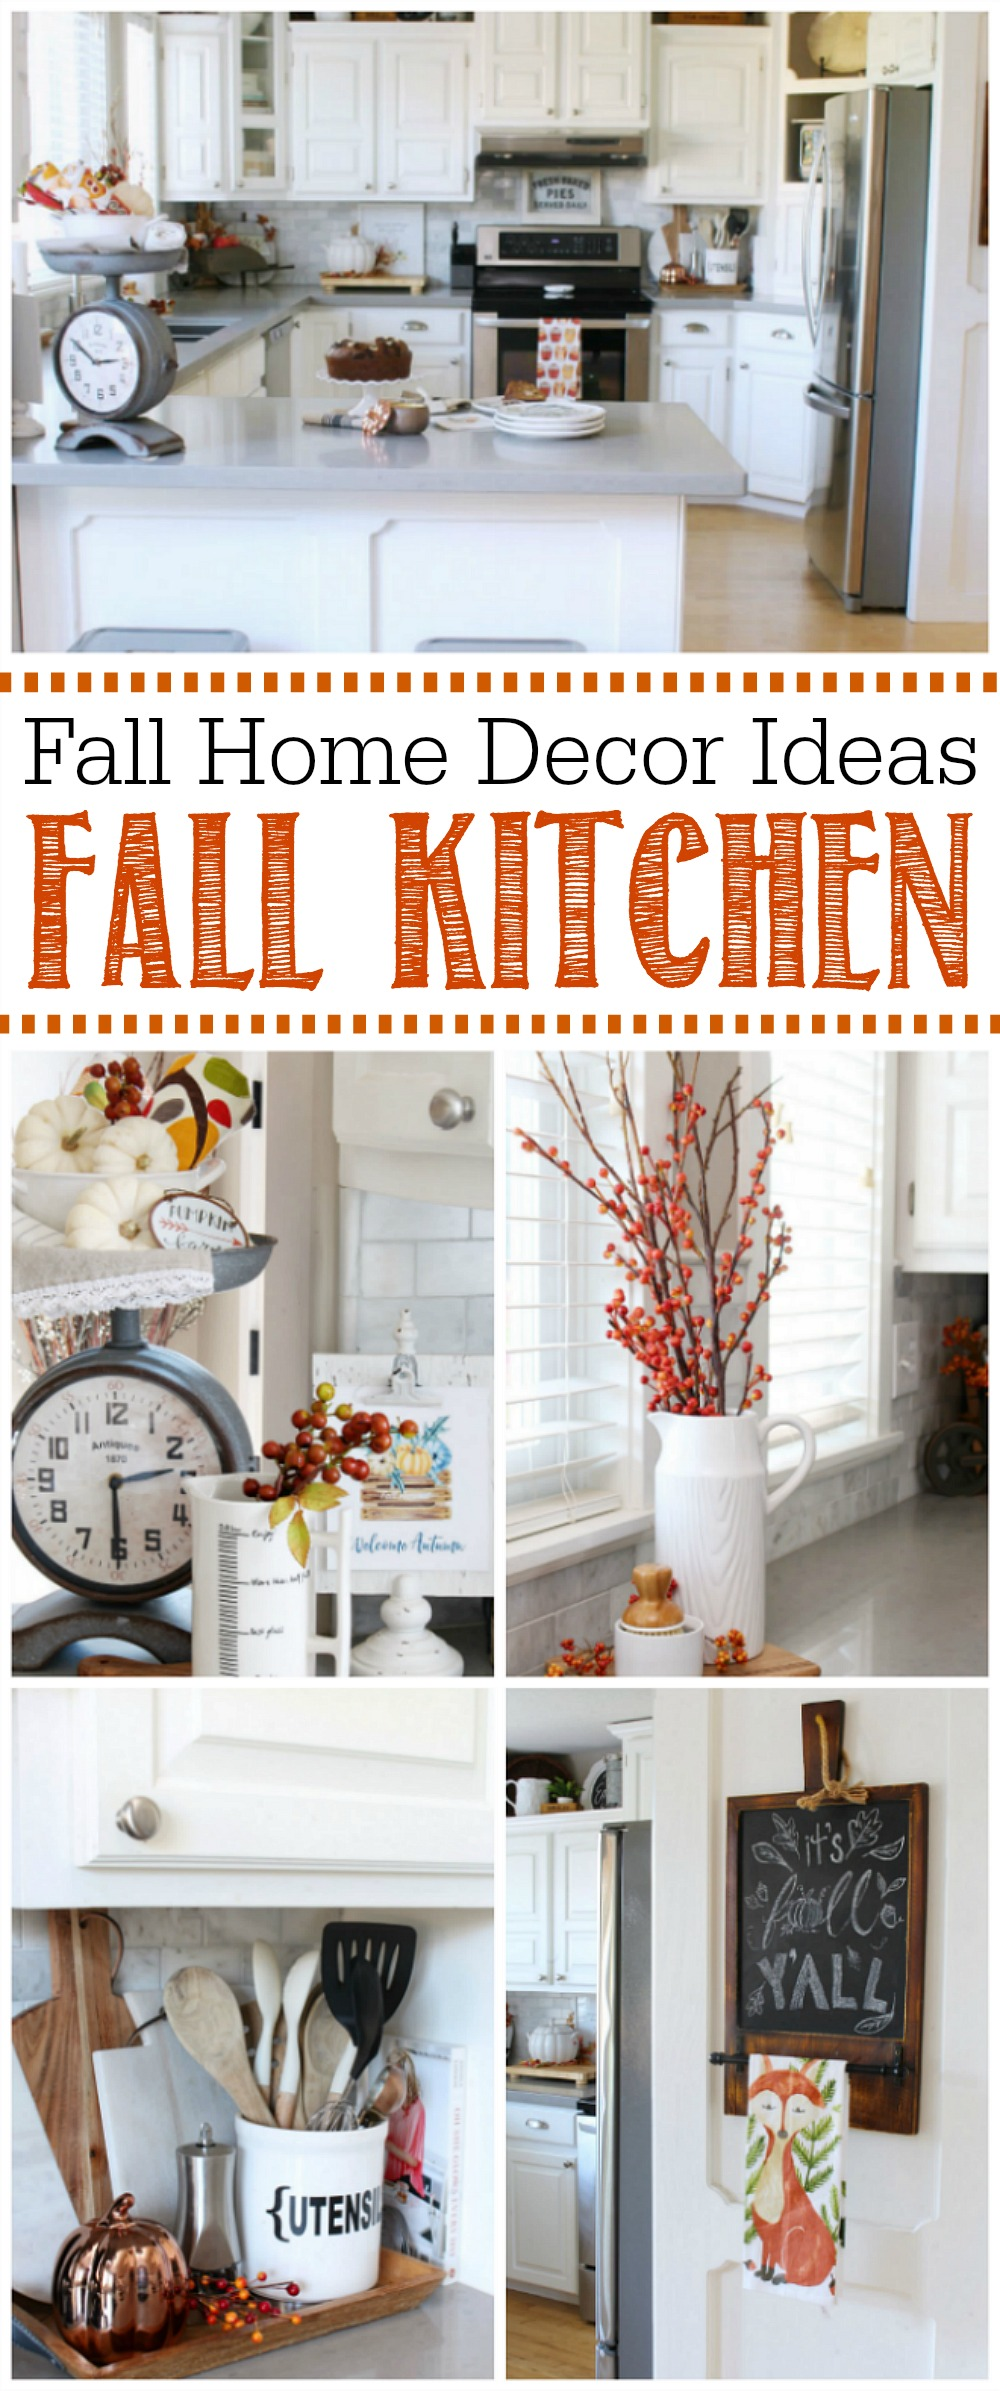 Kitchen fall decor ideas. Join in this fall home tour for tons of fall decor inspiration!